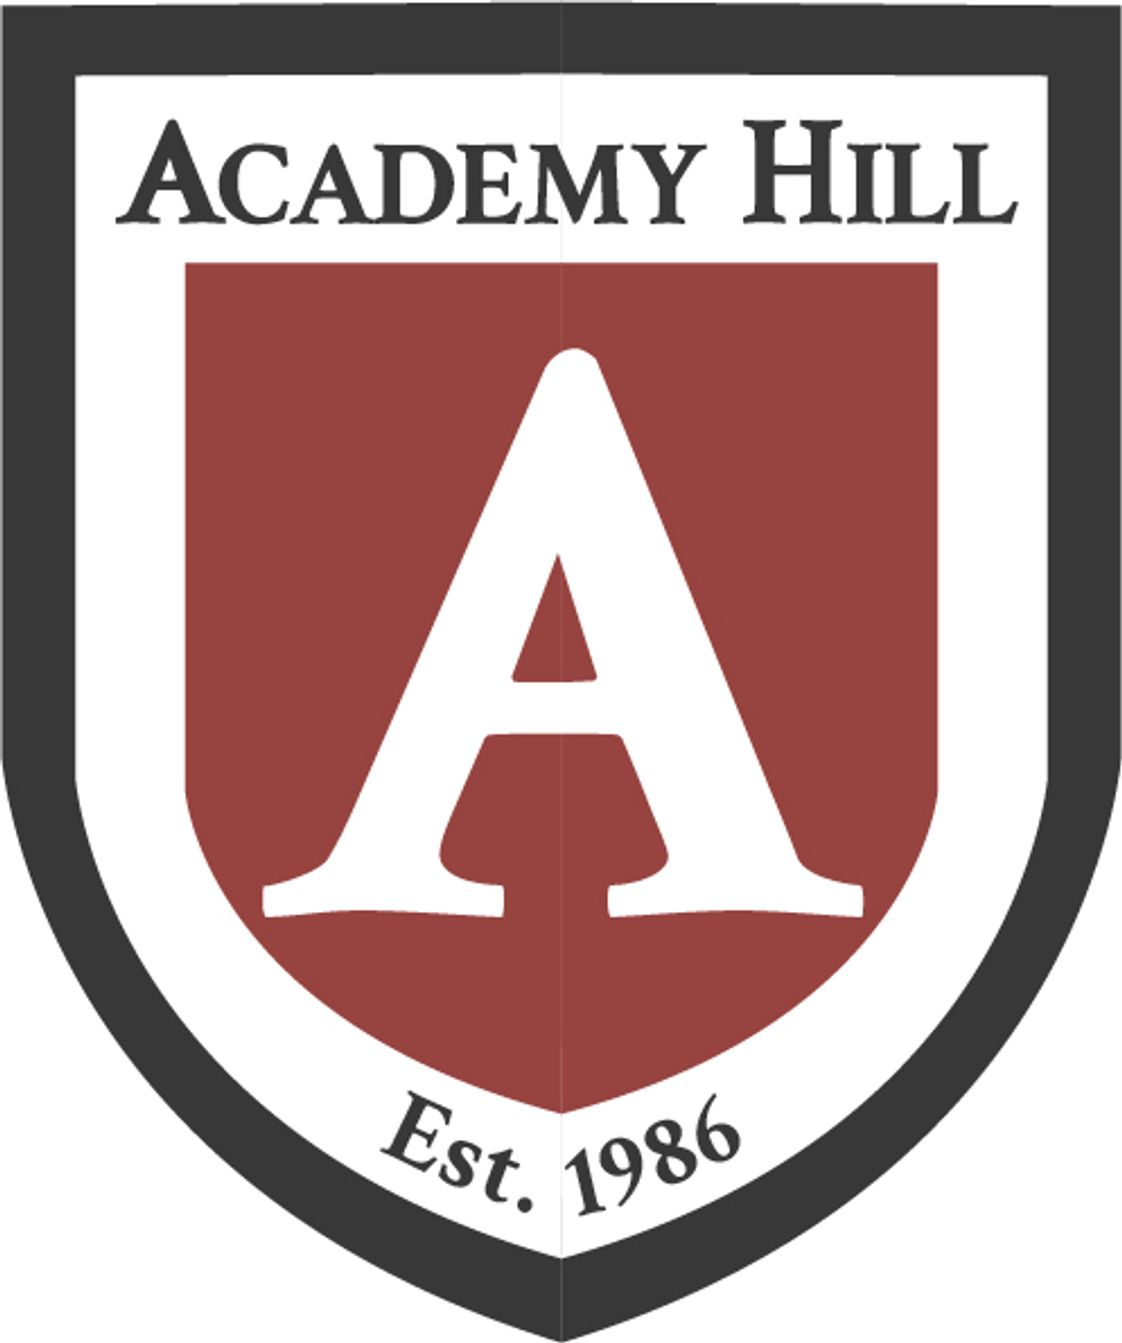 Academy Hill School Photo - Developing the Visionaries, Innovators and Leaders of Tomorrow.